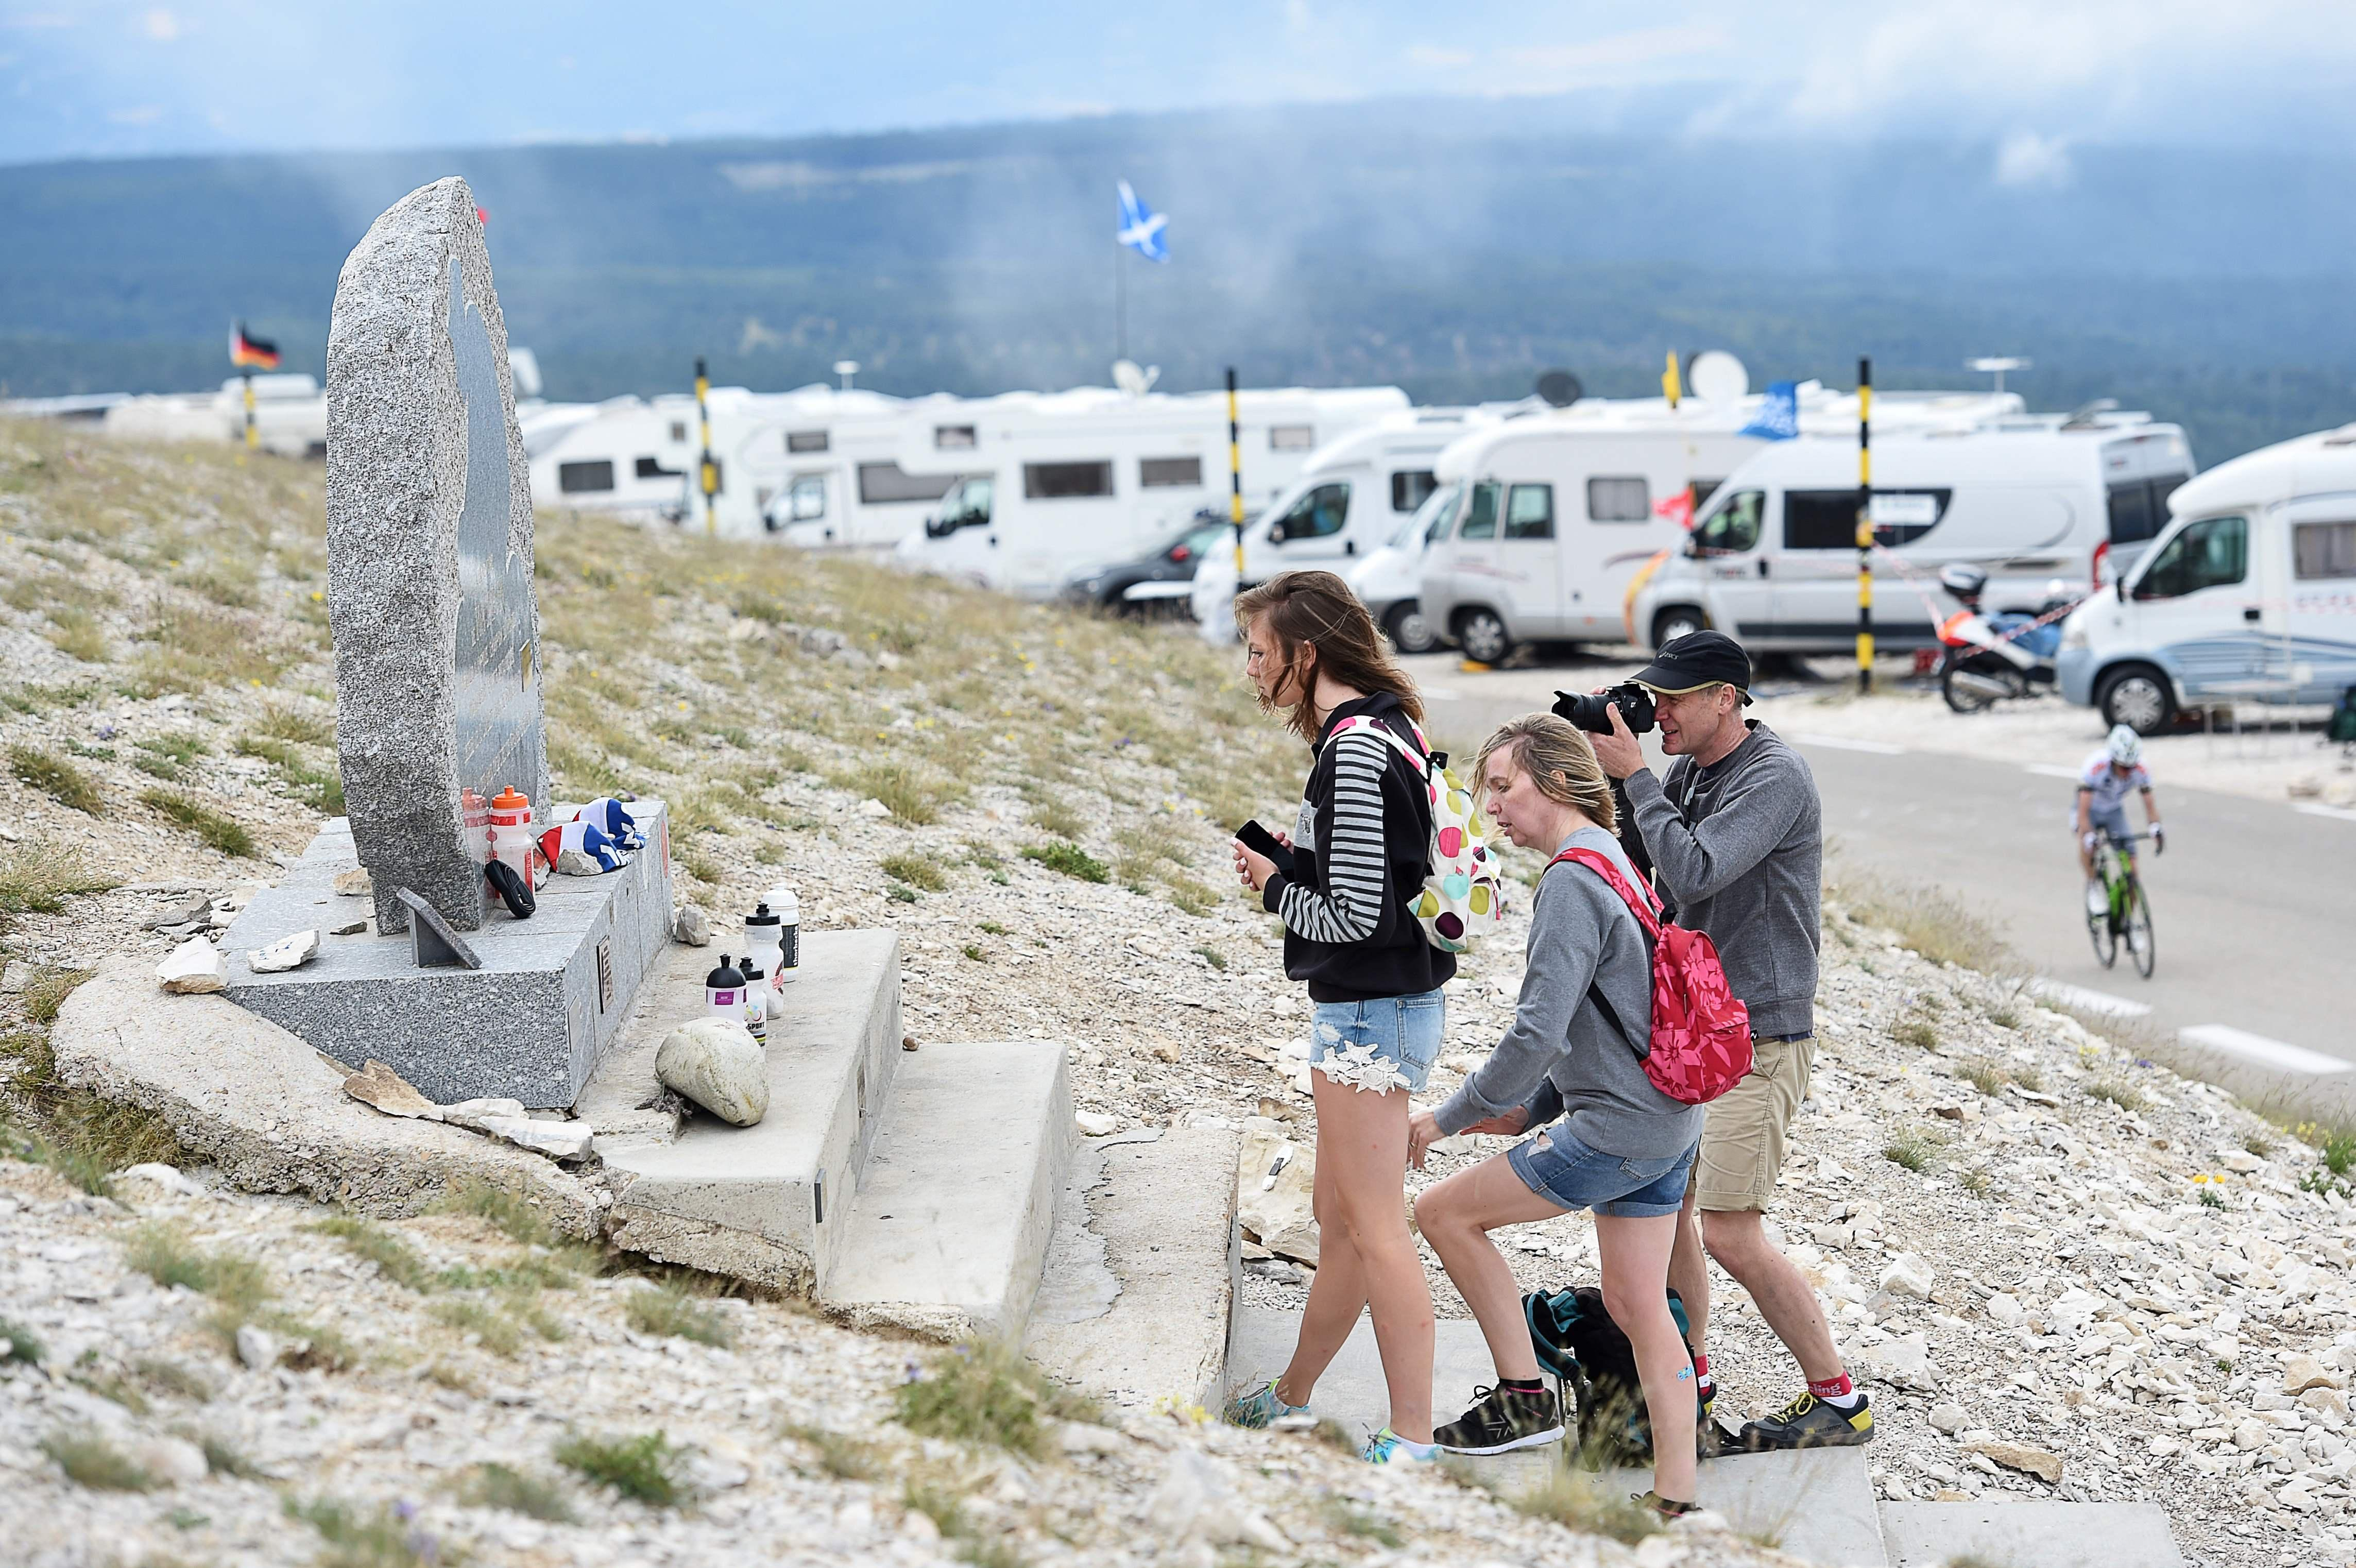 The Tom Simpson memorial on Mont Ventoux is visited by British cycling fans every year